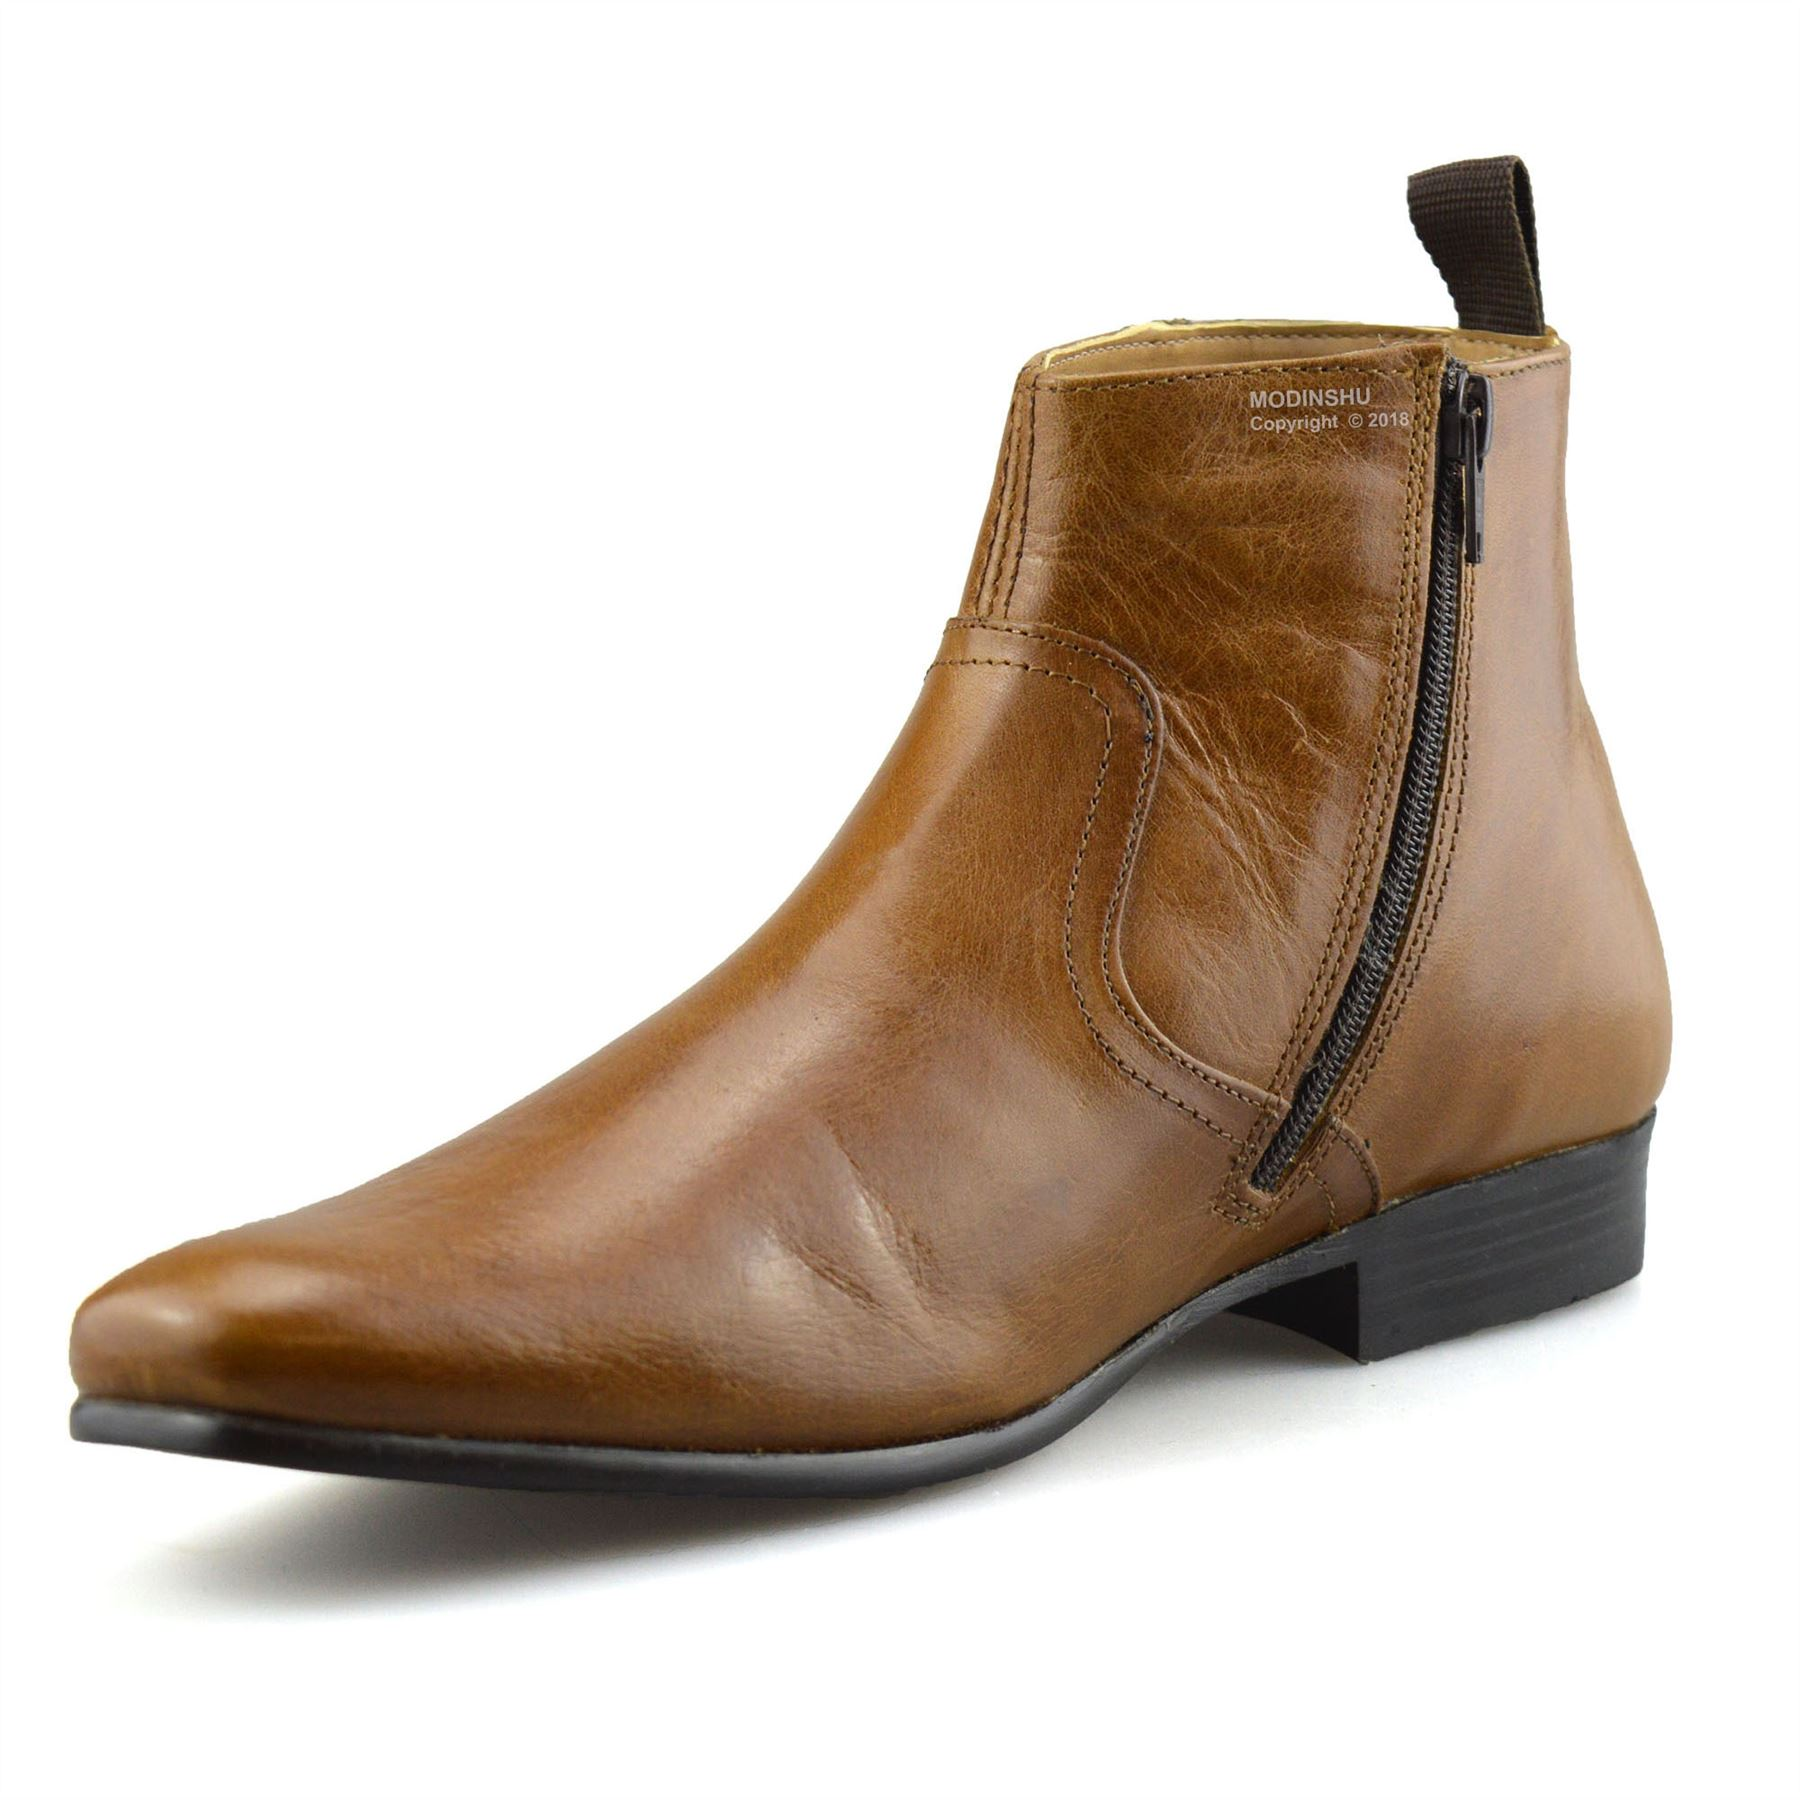 Mens-New-Leather-Zip-Up-Smart-Formal-Chelsea-Dealer-Work-Ankle-Boots-Shoes-Size thumbnail 25